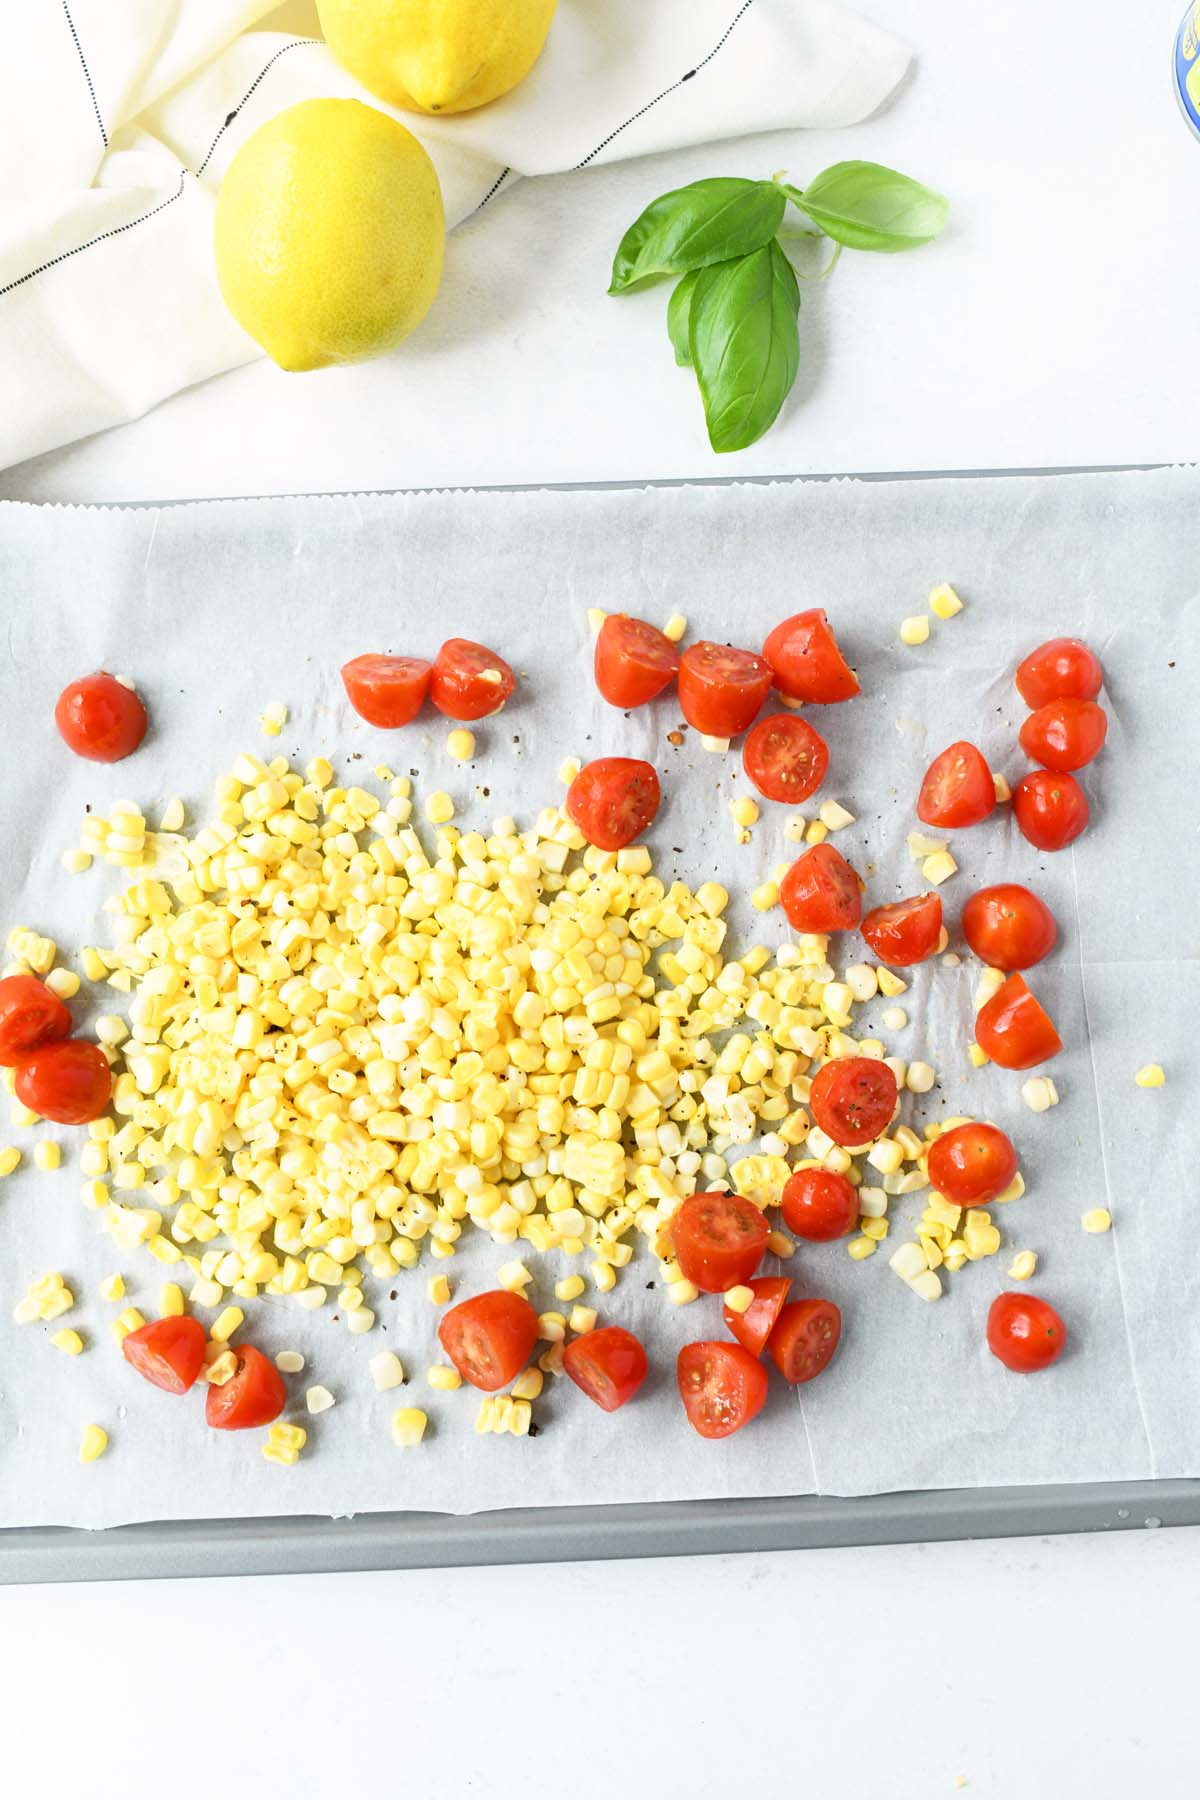 Roasted corn and tomato on a baking sheet.